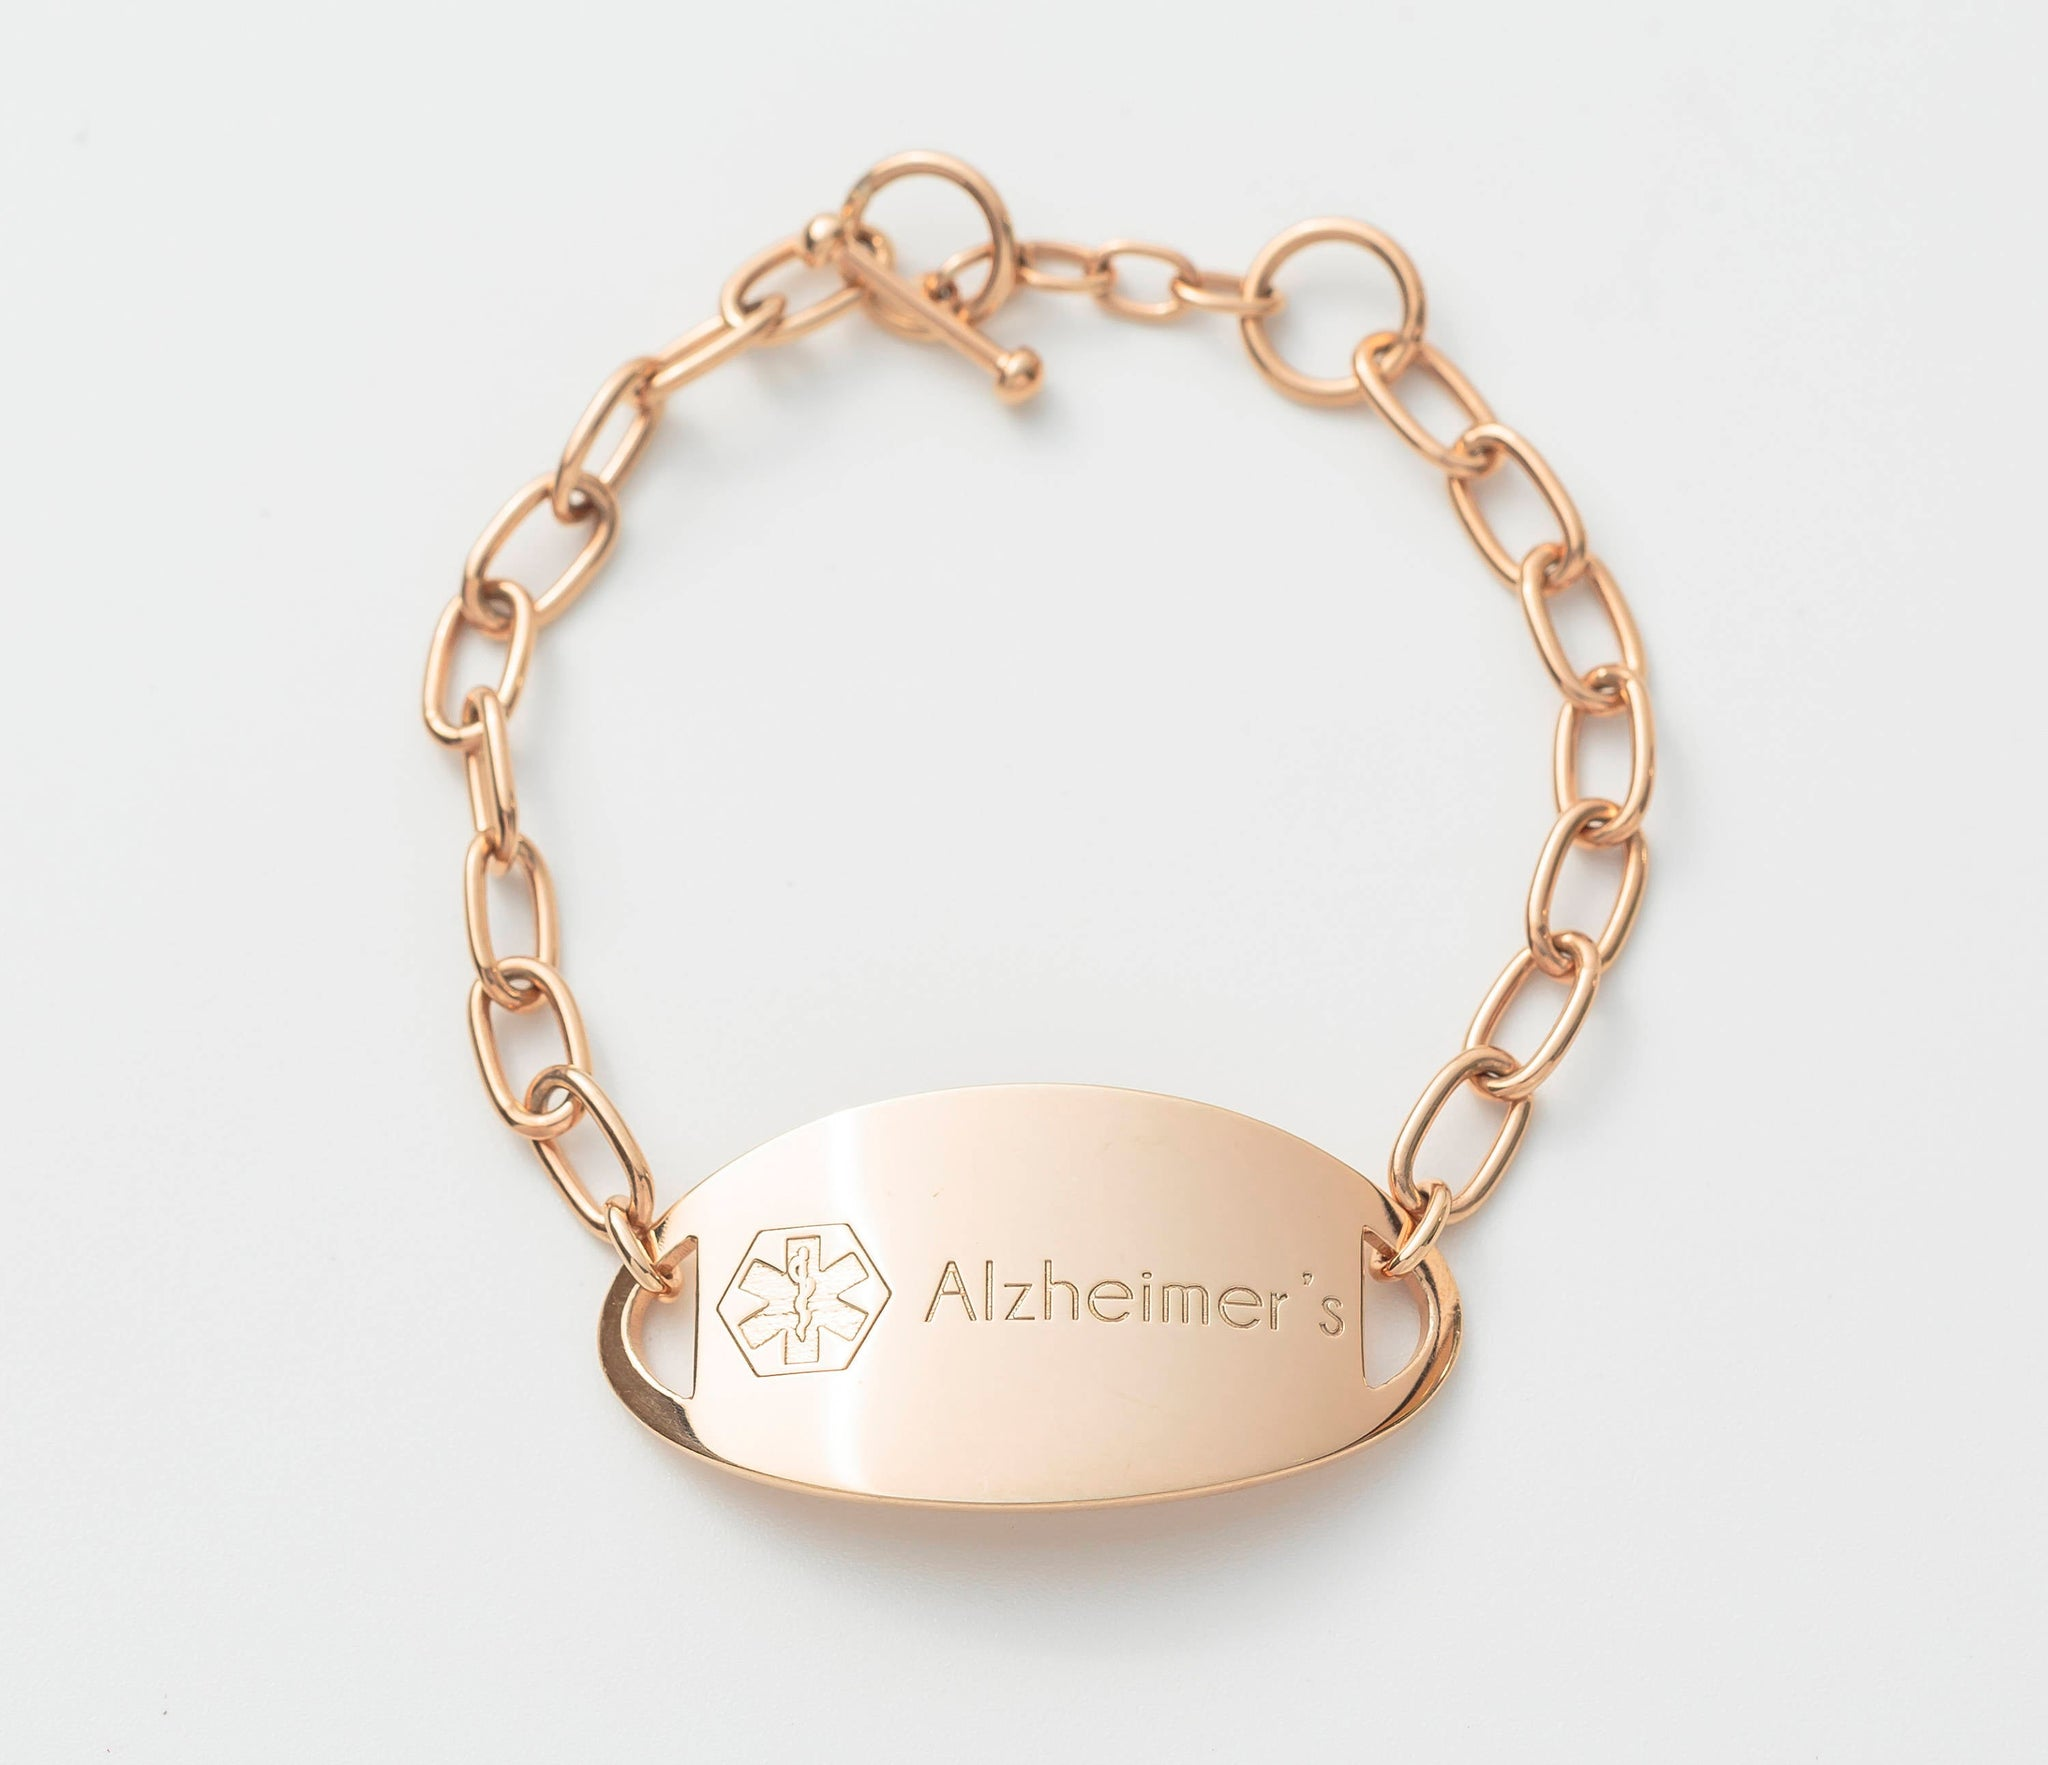 Personalized Medical ID Bracelet